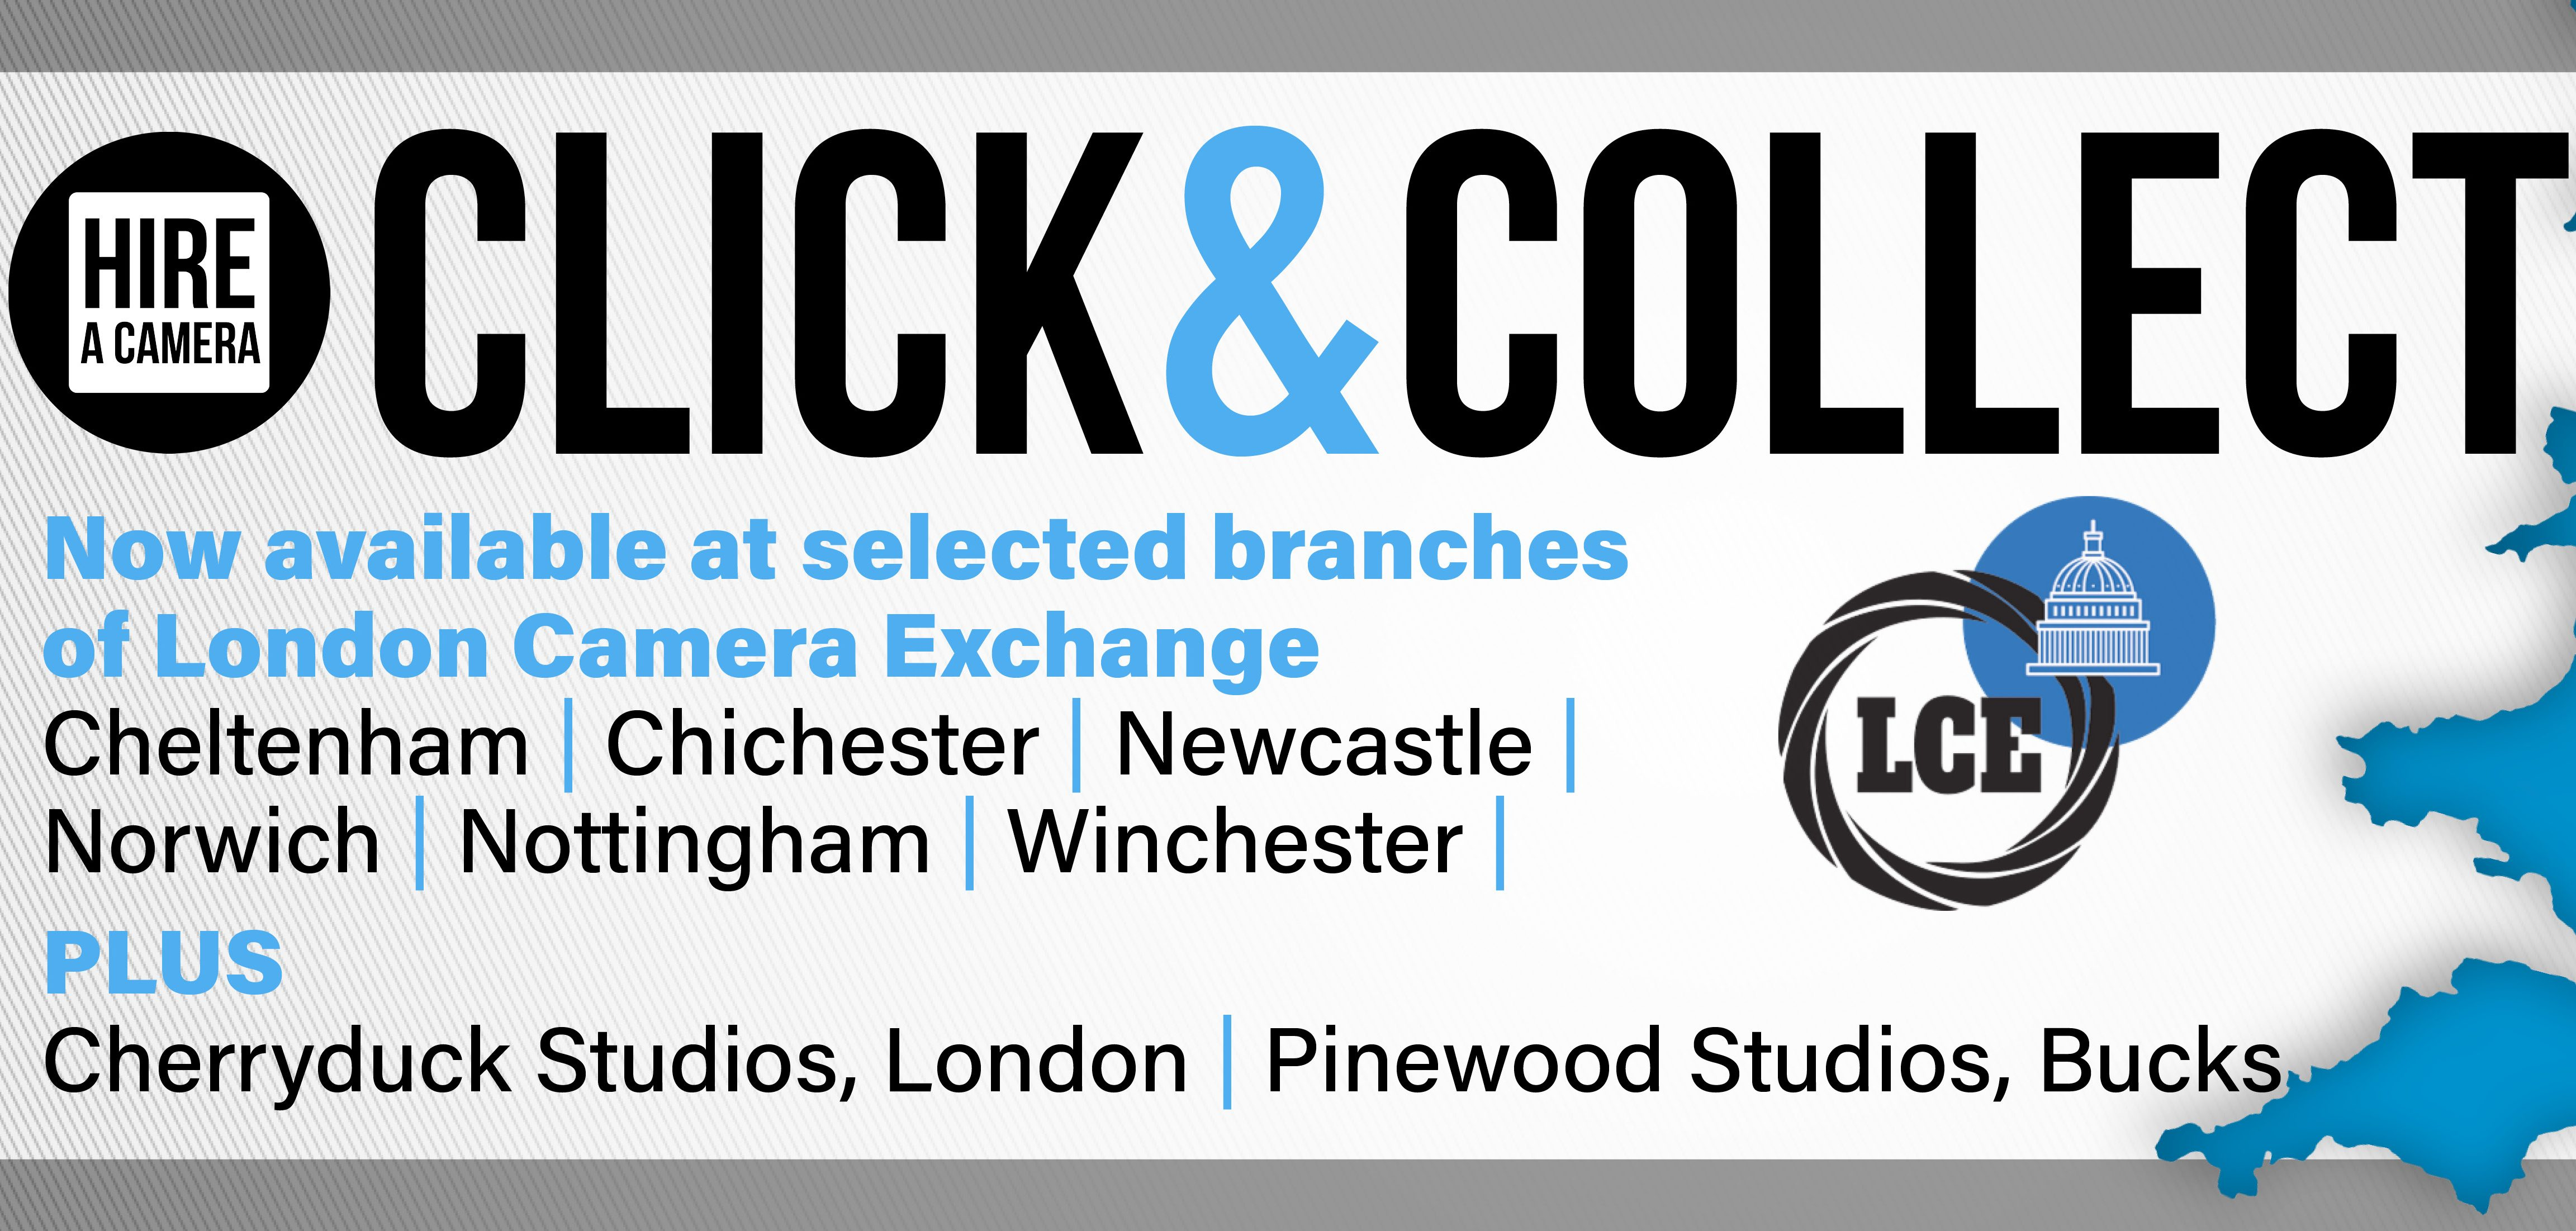 Hireacamera launches nationwide Click and Collect service